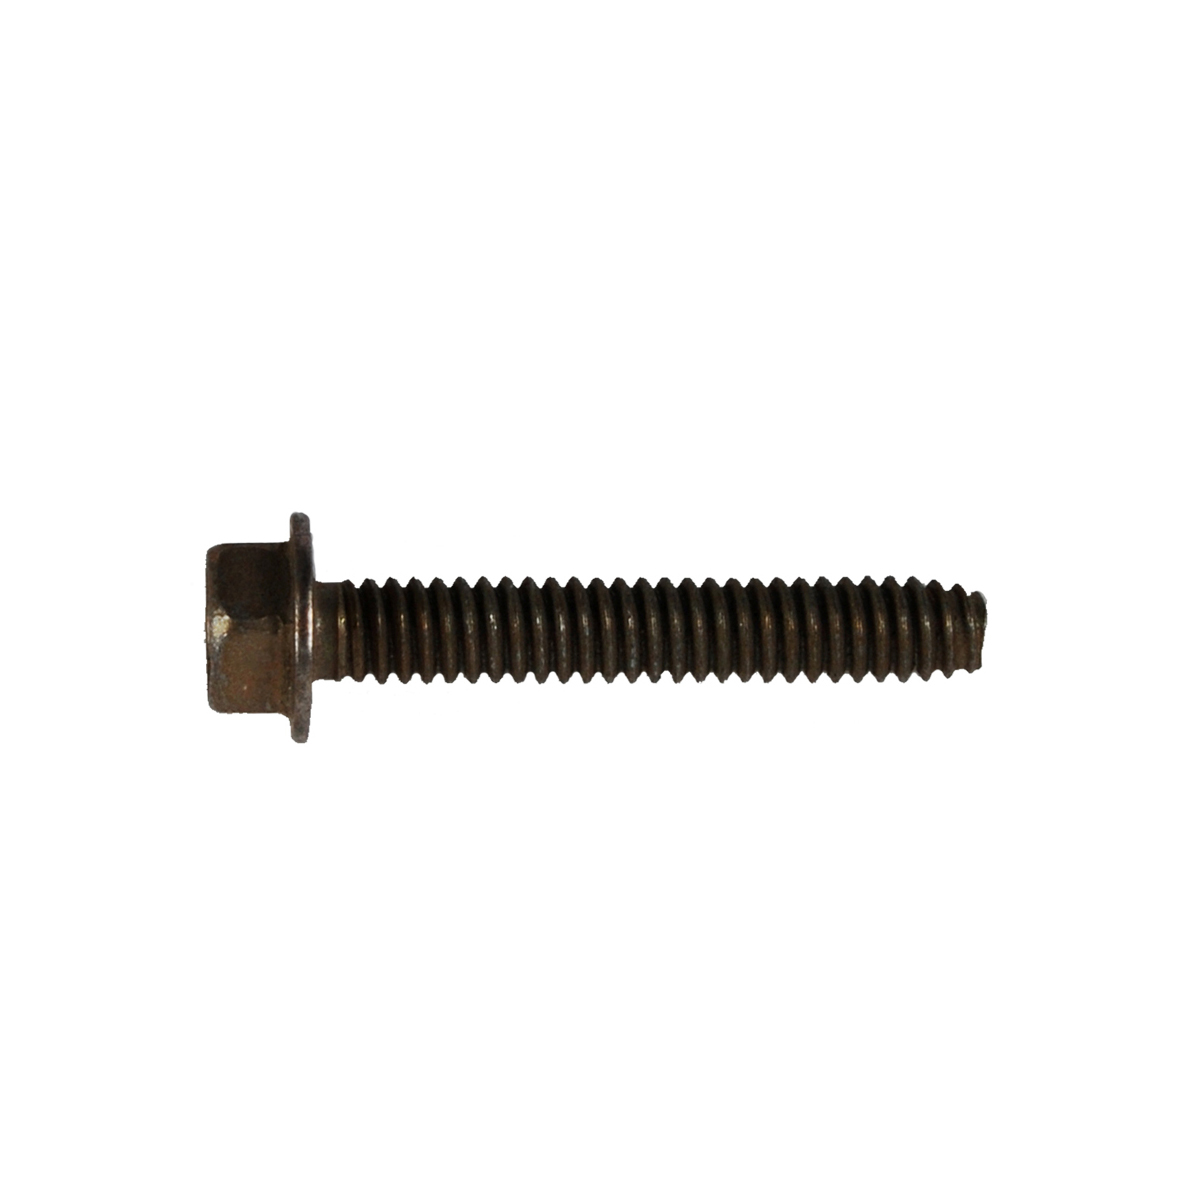 hex washer head screw 710-0778